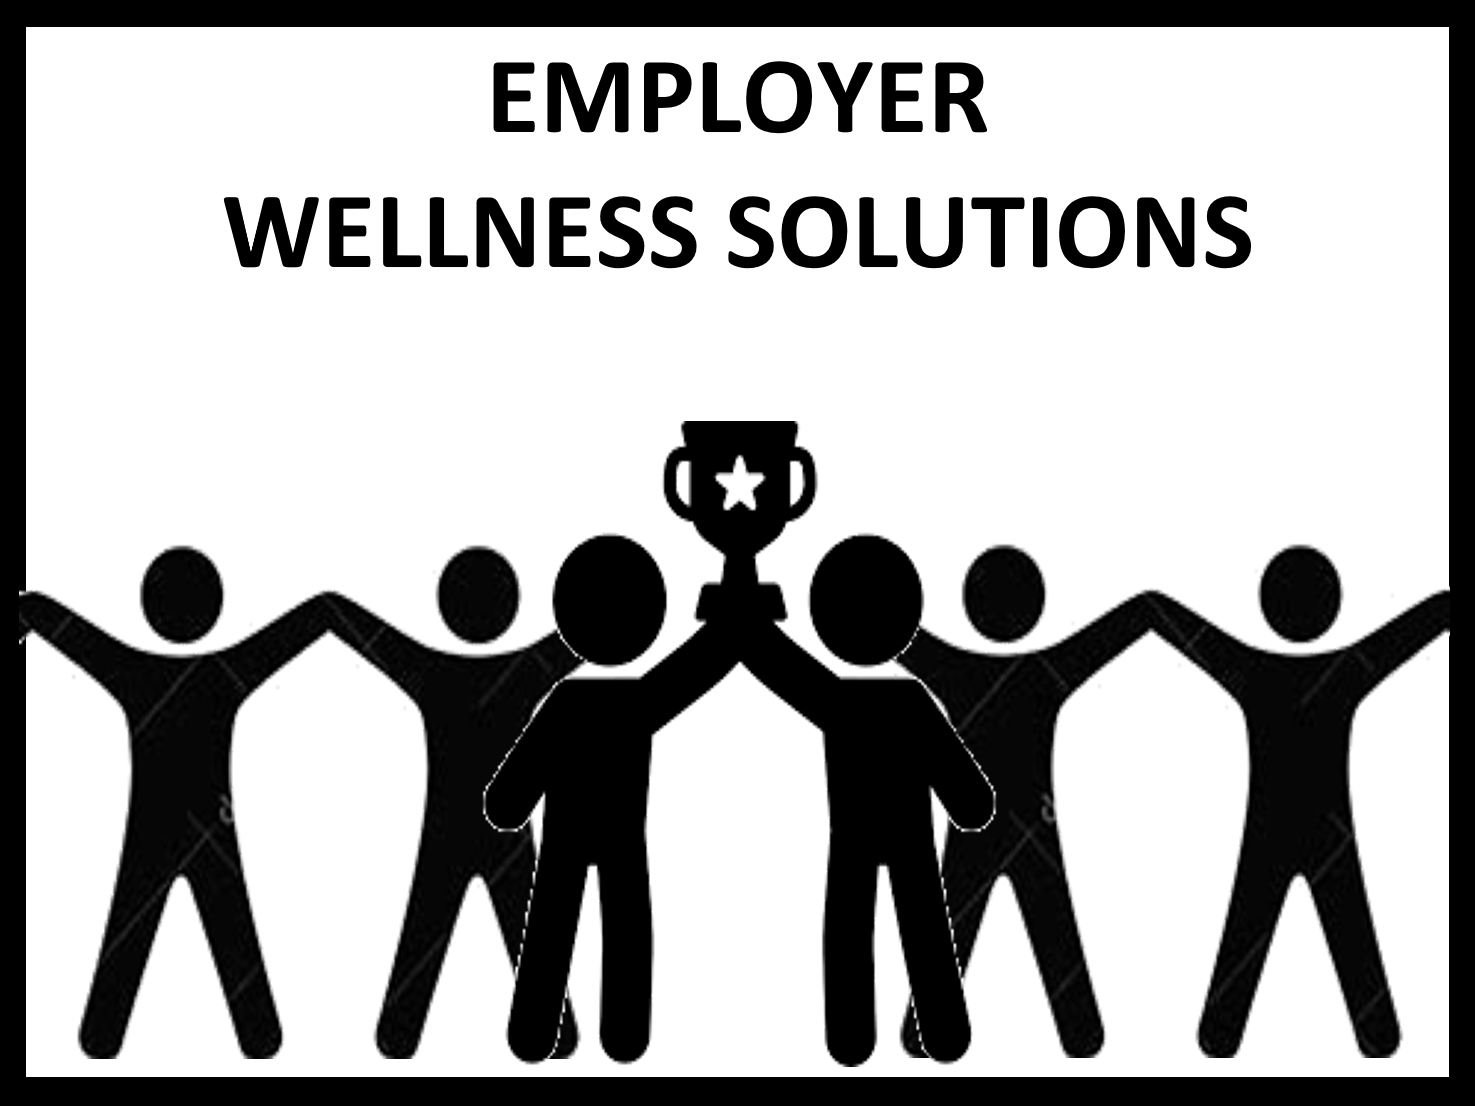 - We provide award-winning, science-based, effective wellness and fitness programs for corporations, law enforcement agencies and government entities. With over 12 years experience and 40+ corporate clients thus far, the focus for each client is measurable and sustainable results using a positive approach. Services range from a single speaking engagement or consultation to fully customized, turn-key, best practice wellness programs with metrics and executive results reports.START HERE →